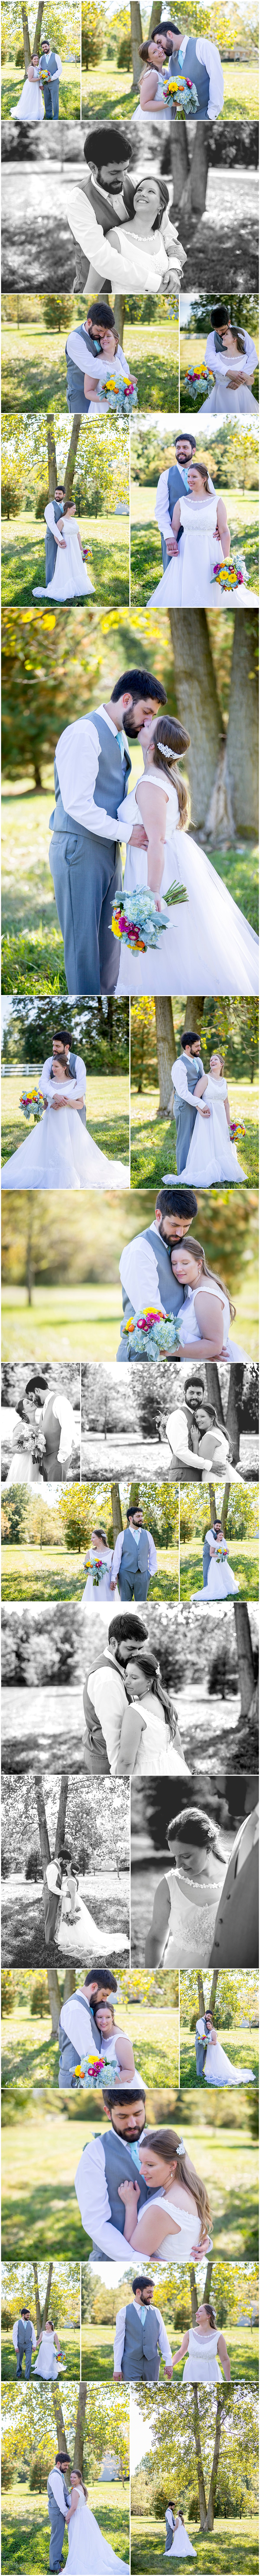 Jorgensen Farms Wedding New Albany Ohio